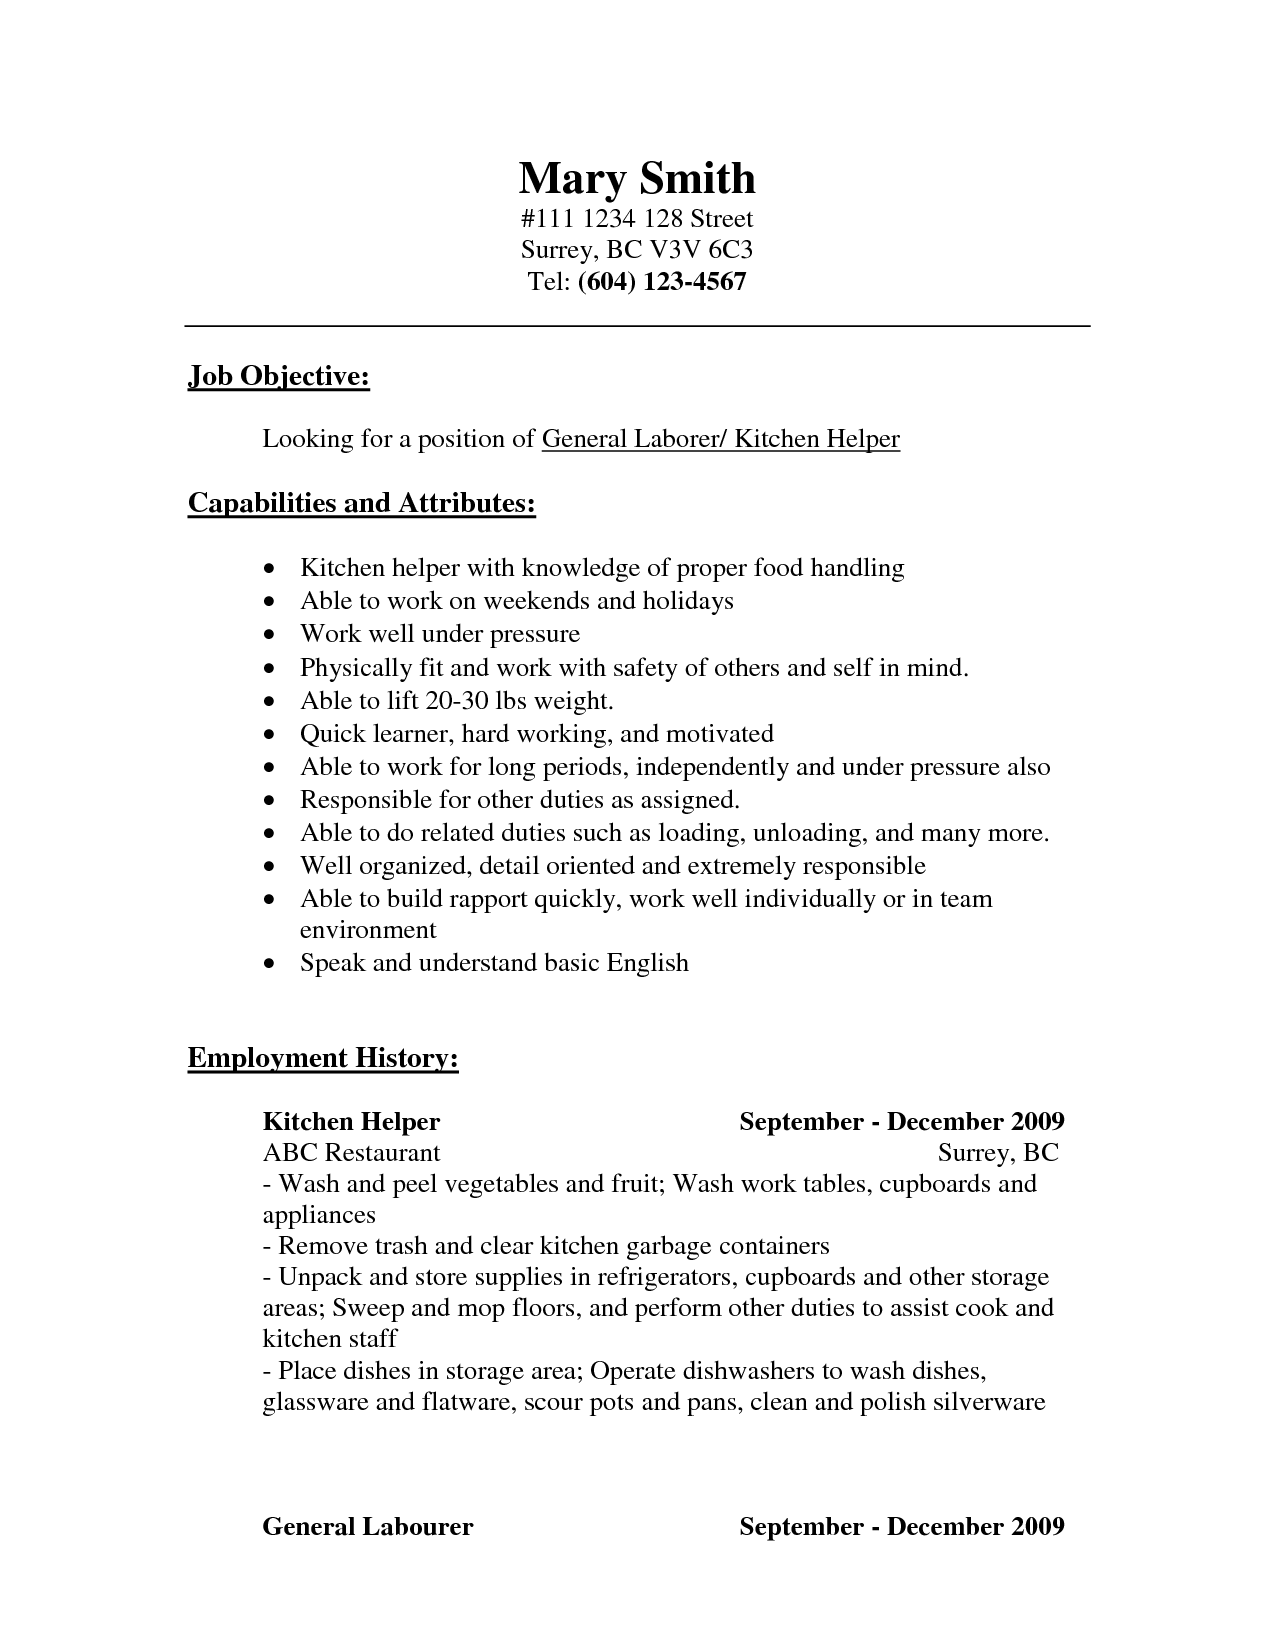 resume helper cover letter electrician and letters sample great job description templates